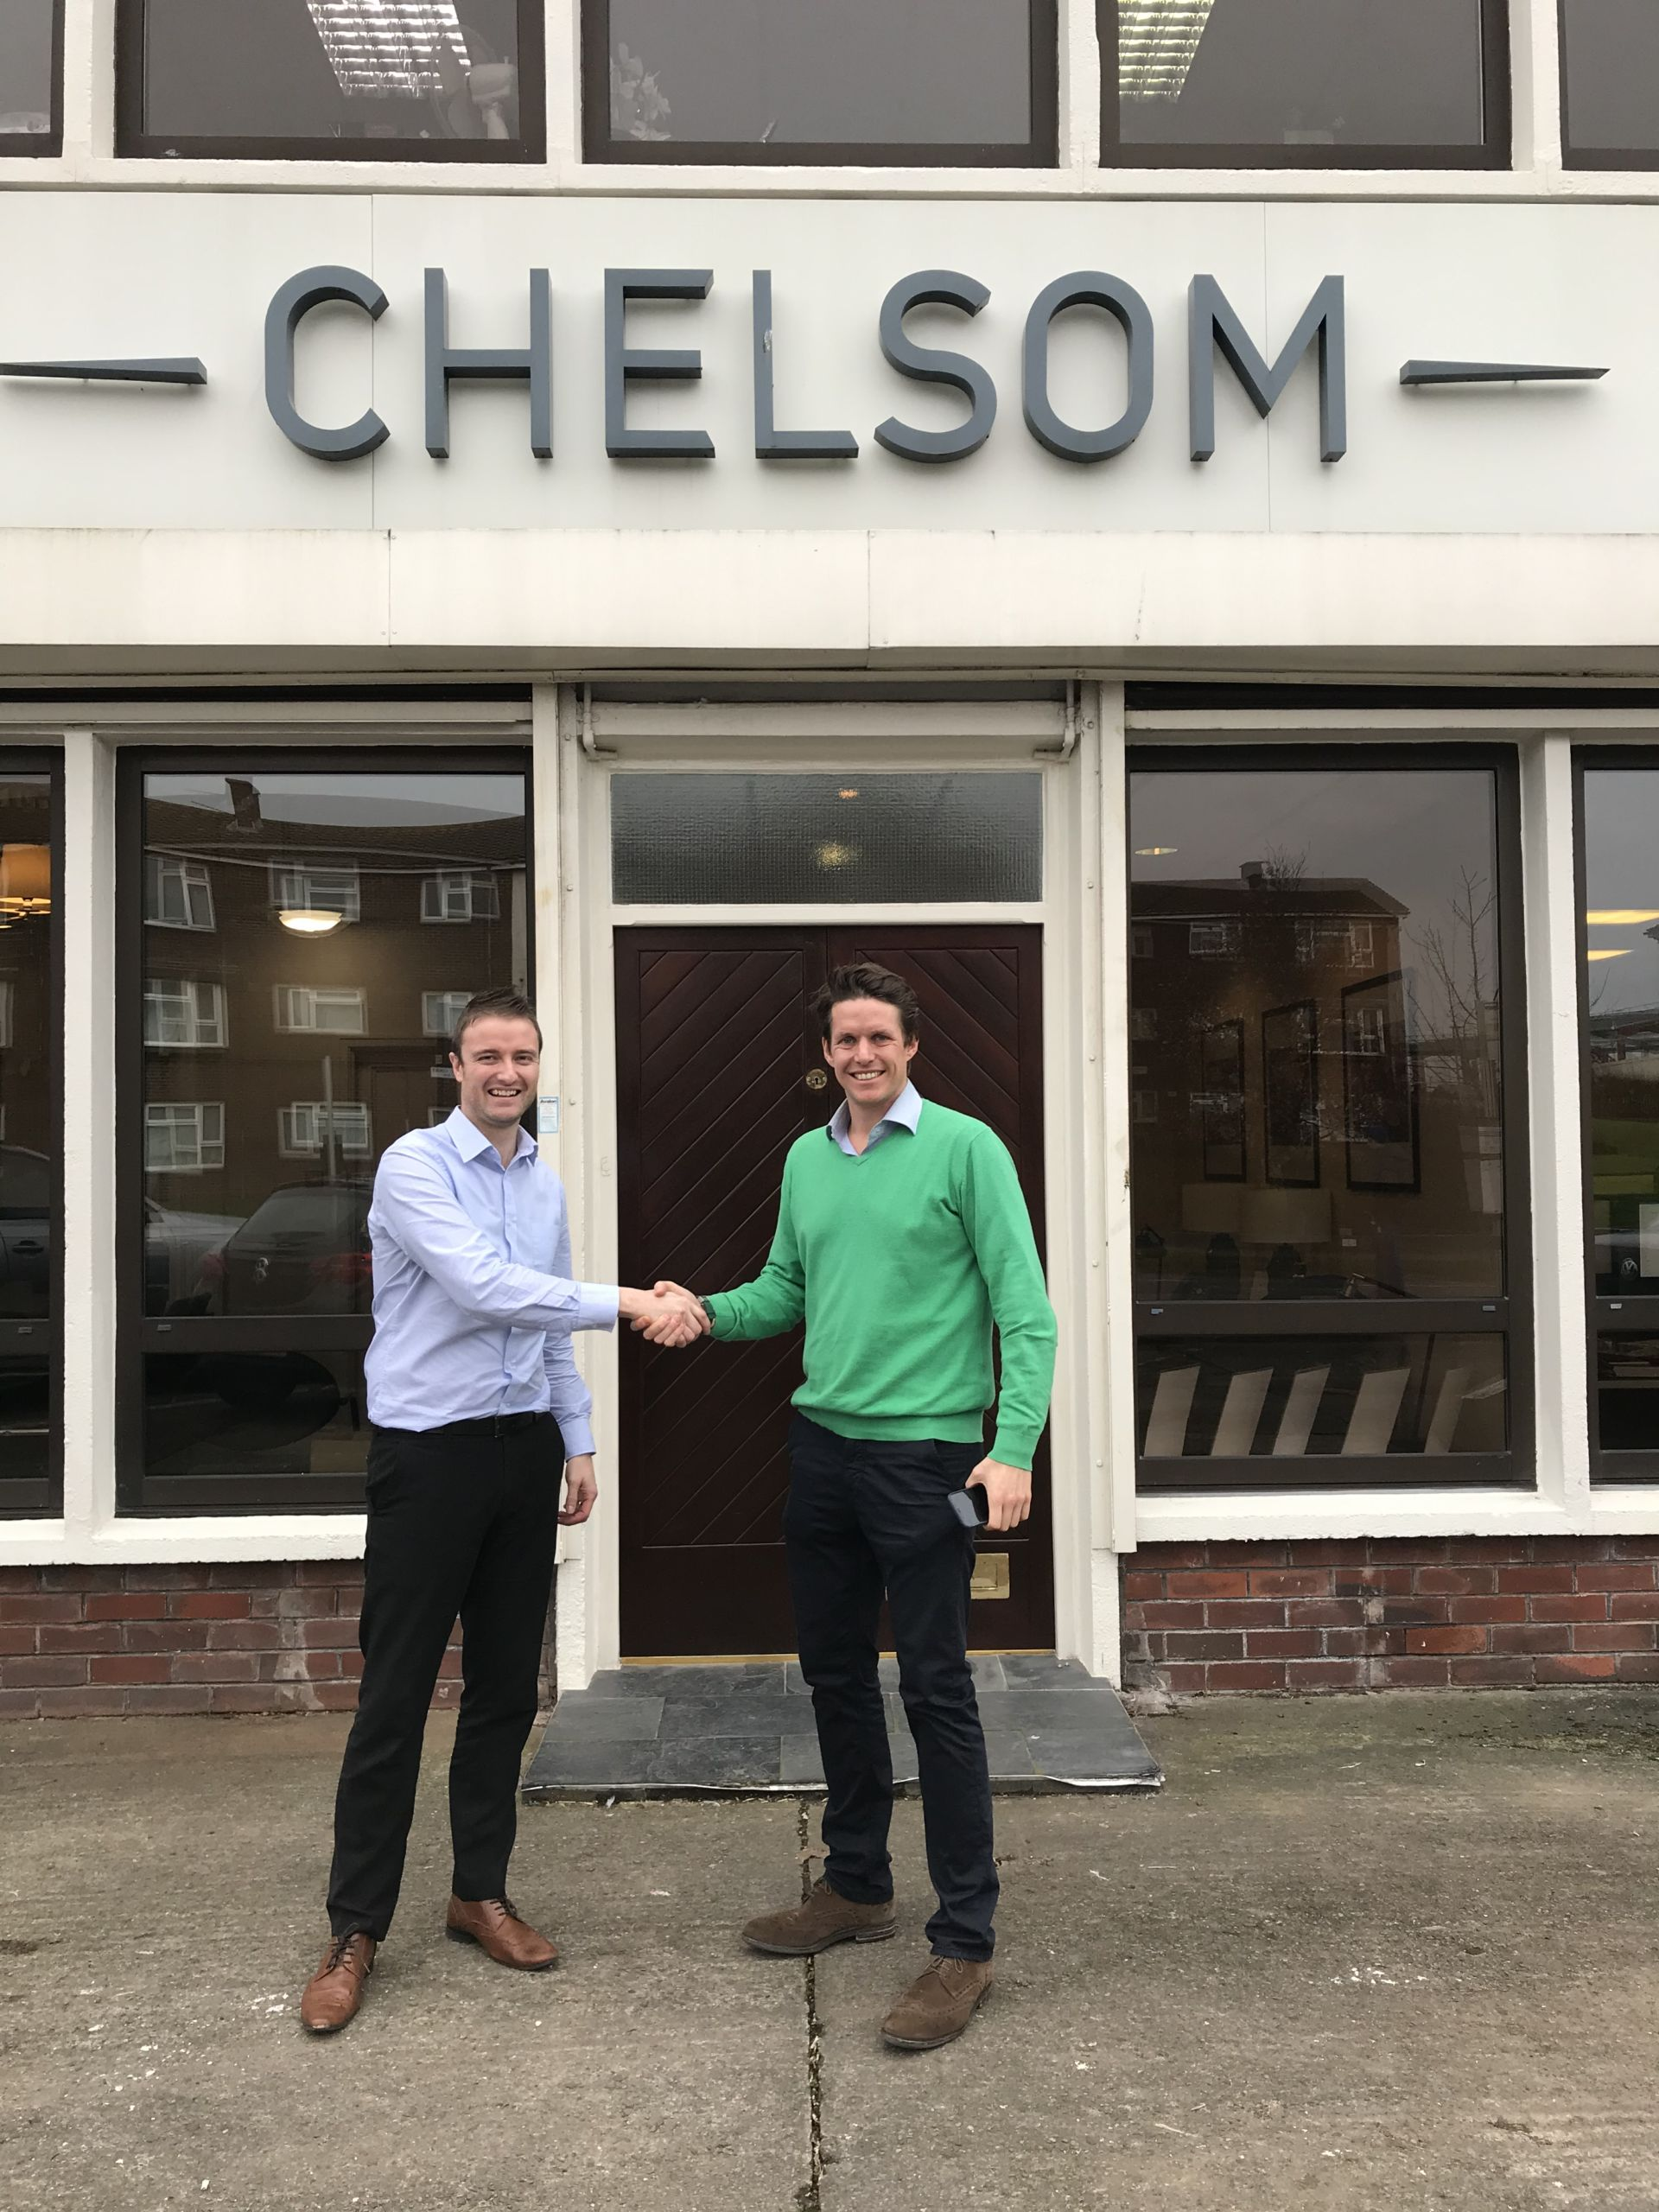 Lightbulb moment as Chelsom goes green